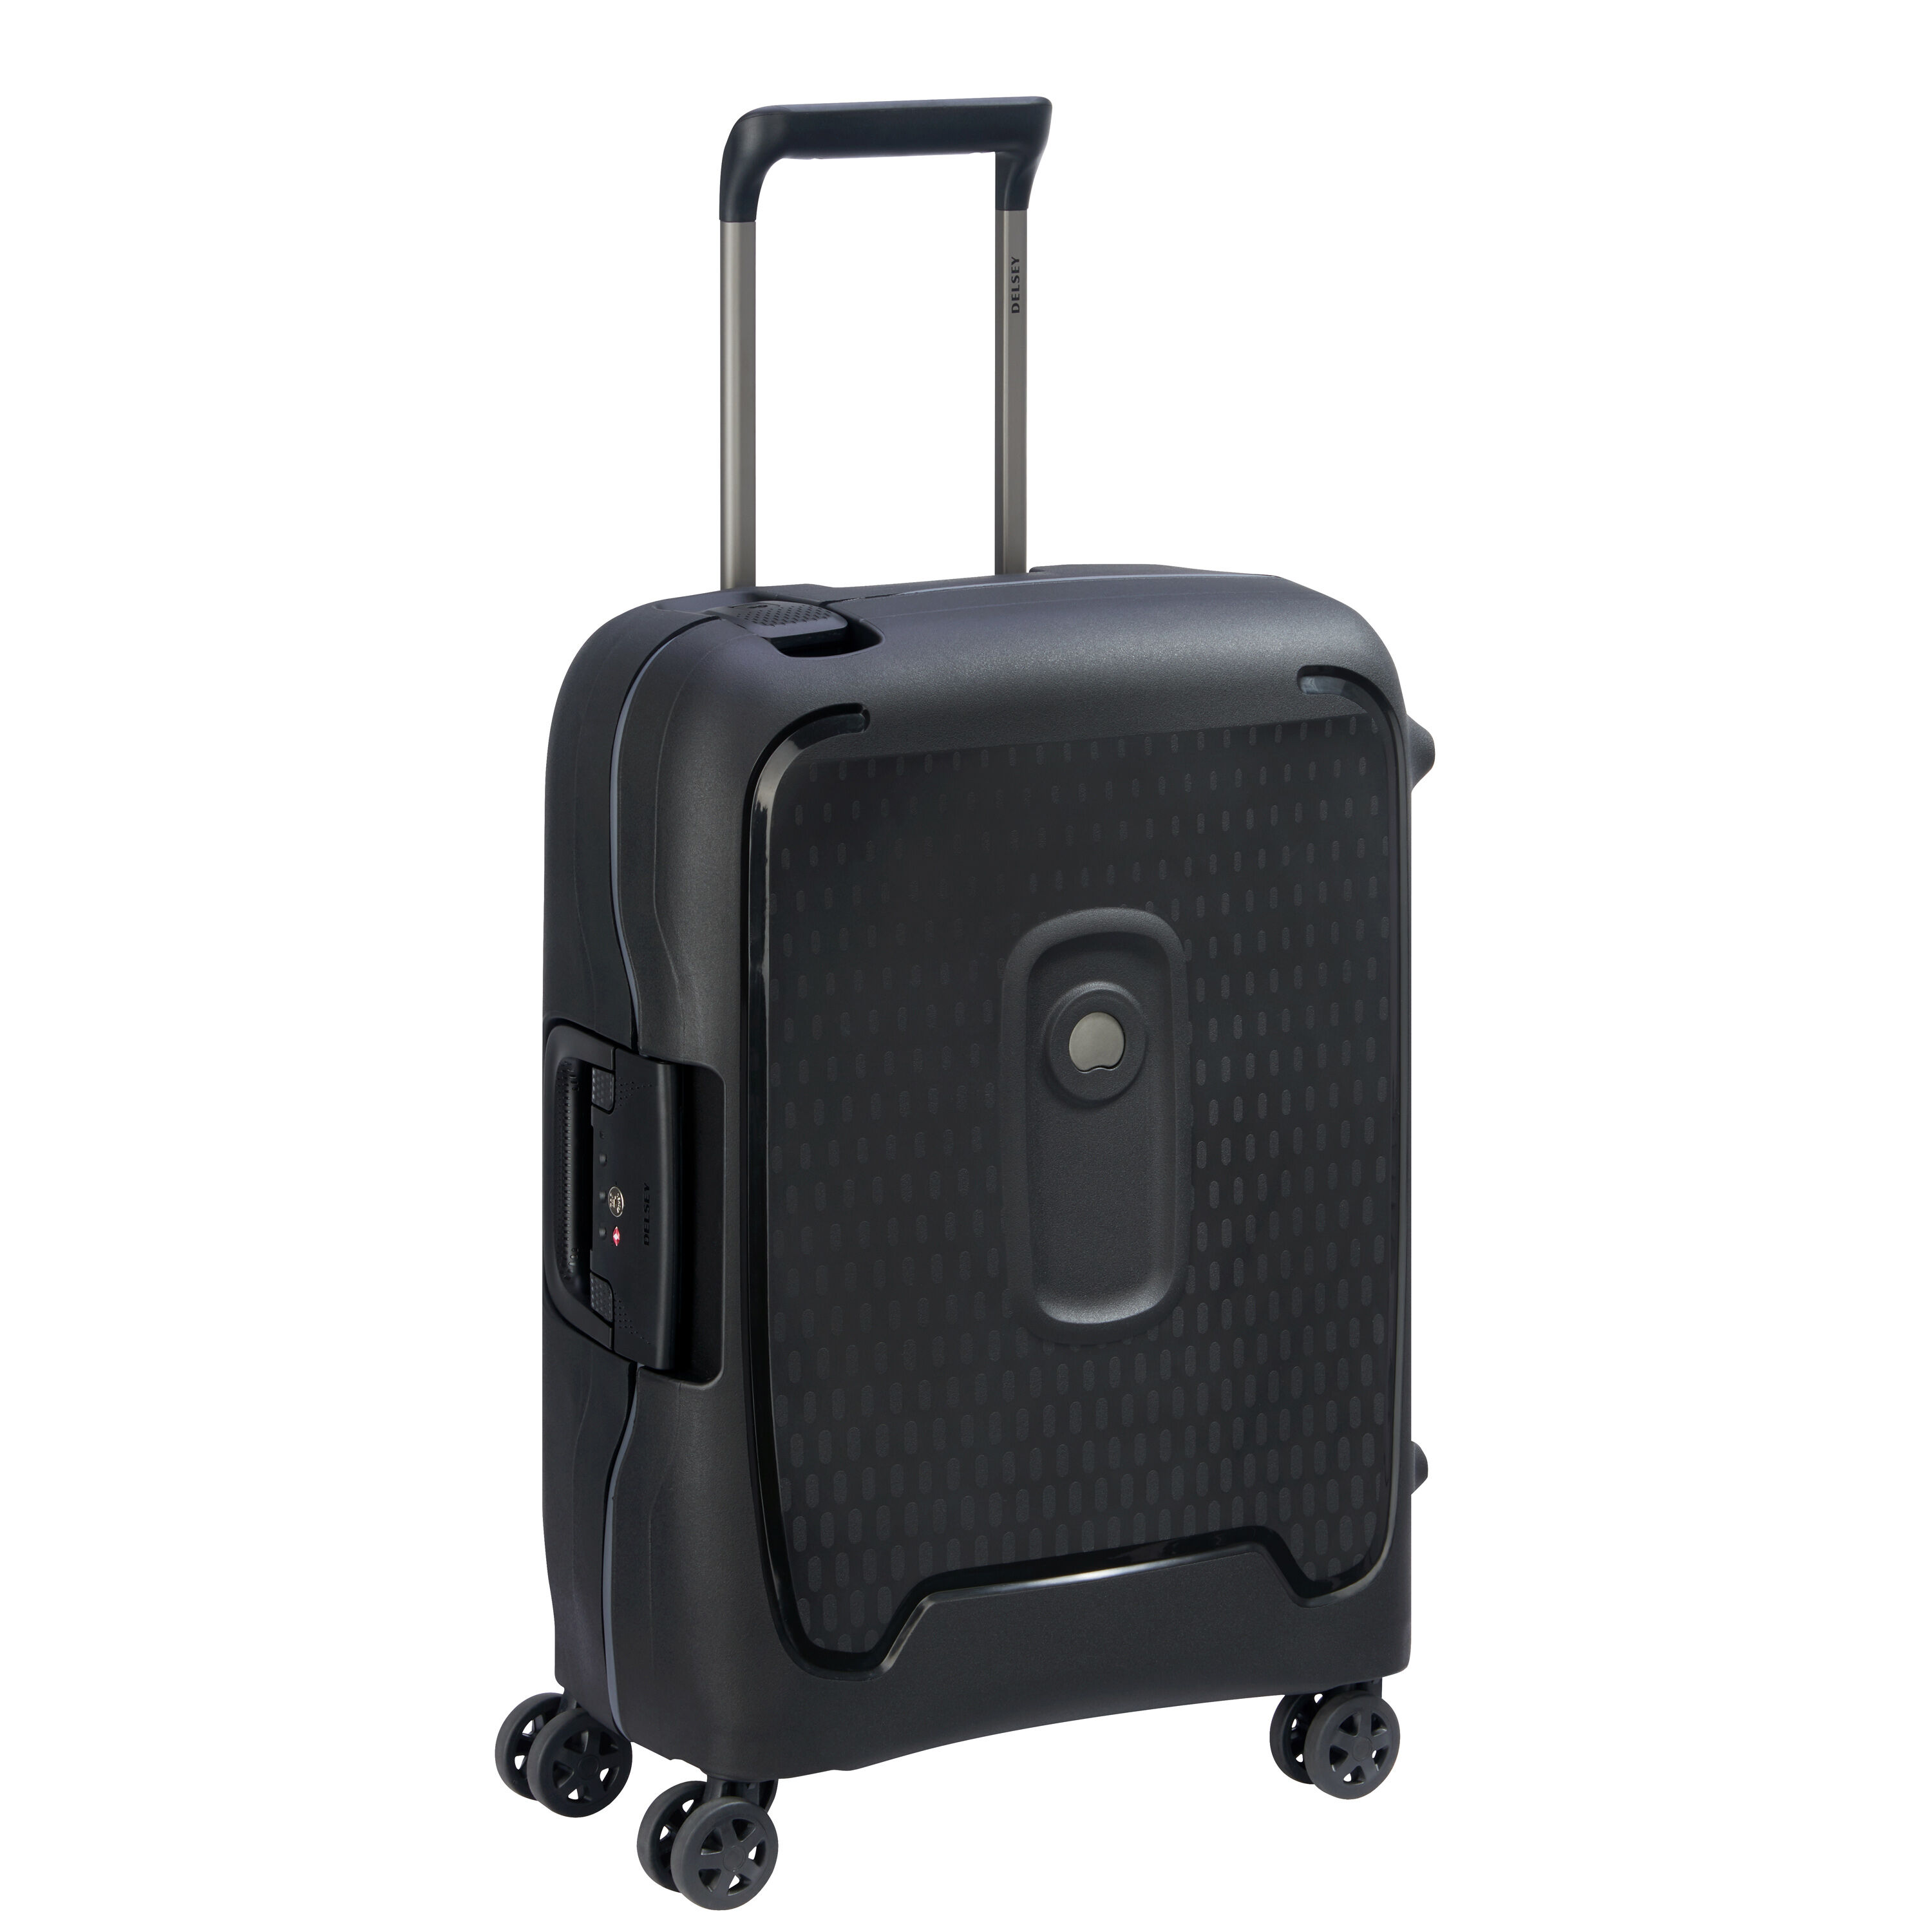 Delsey Valise cabine Moncey Trolley Cabine SL 4DR 55 OH42ZcHKJJ